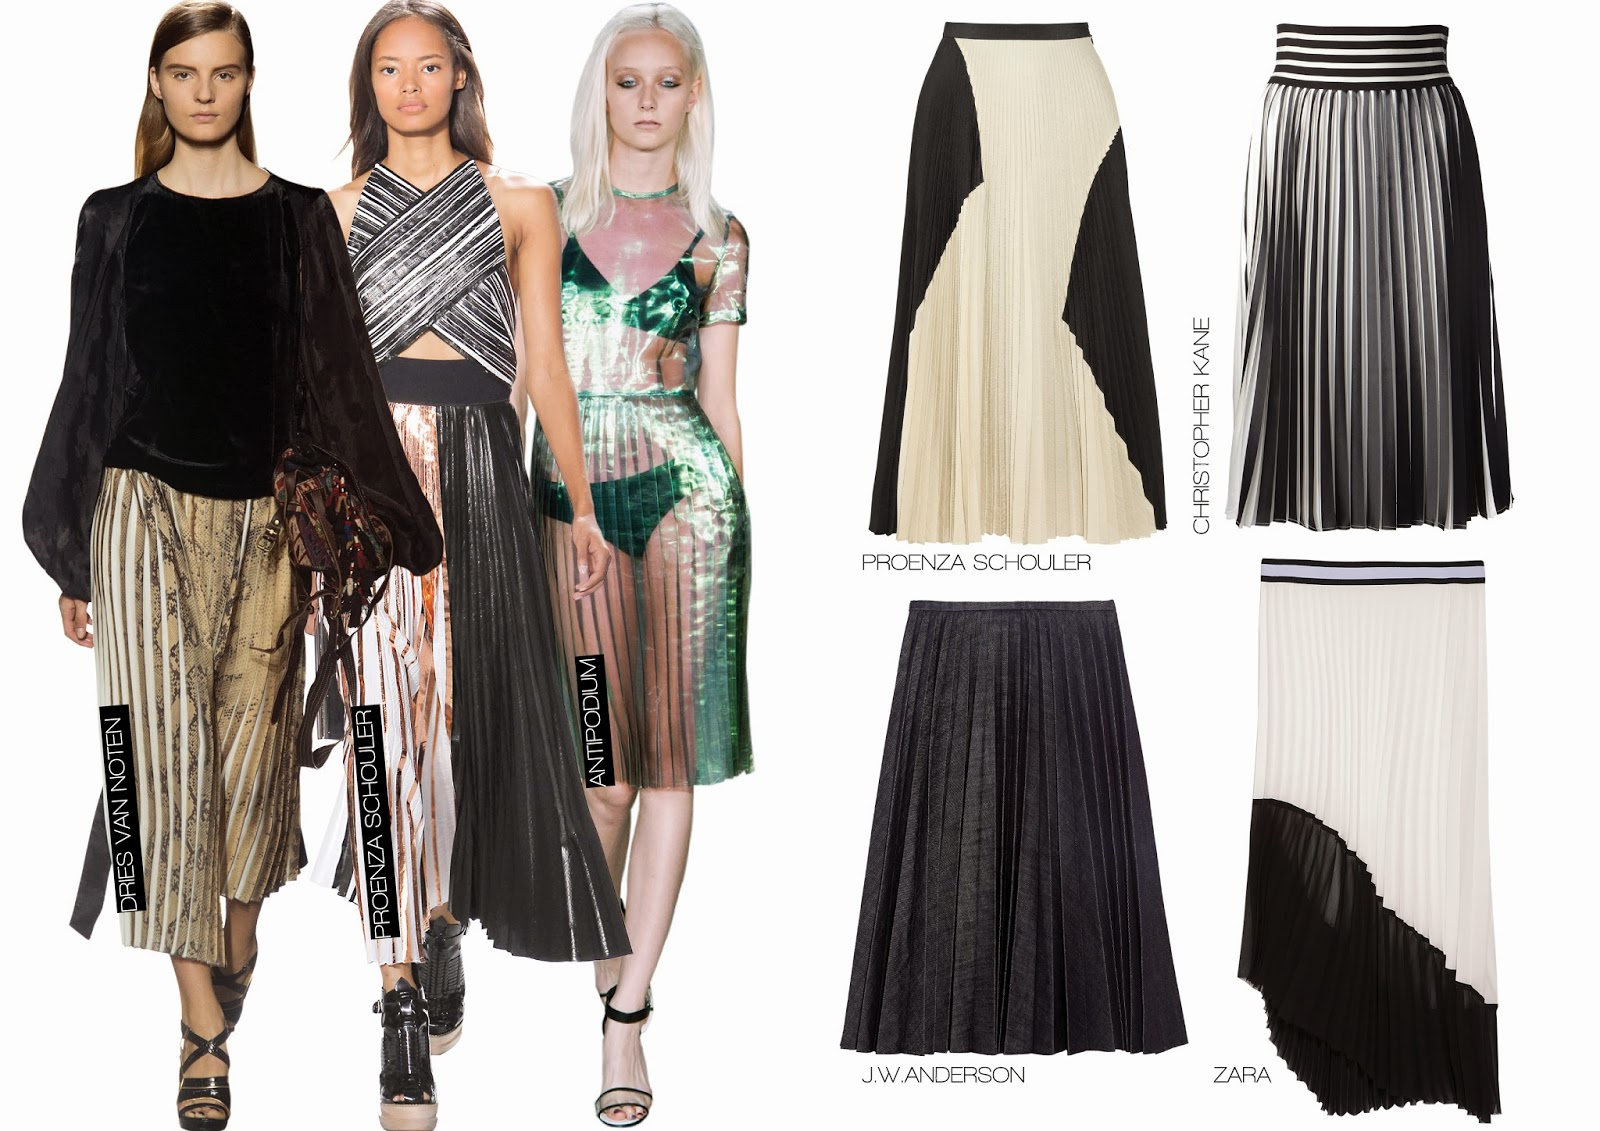 SPRING/SUMMER 2014 TREND - PLEATS